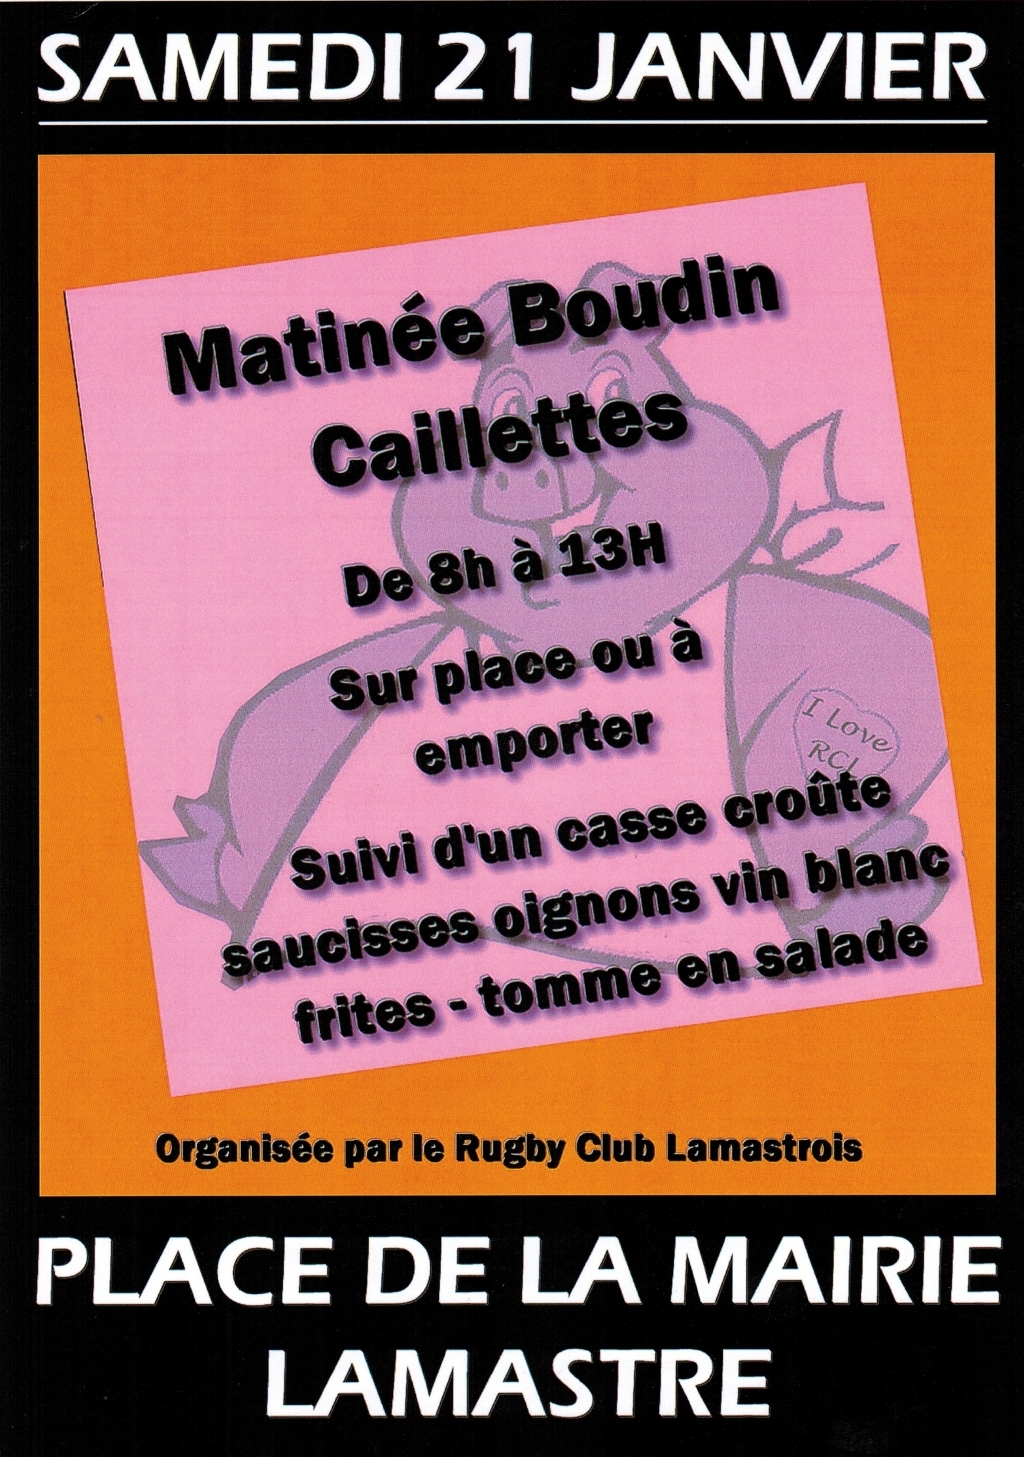 boudin caillette rugby lamastre 2017